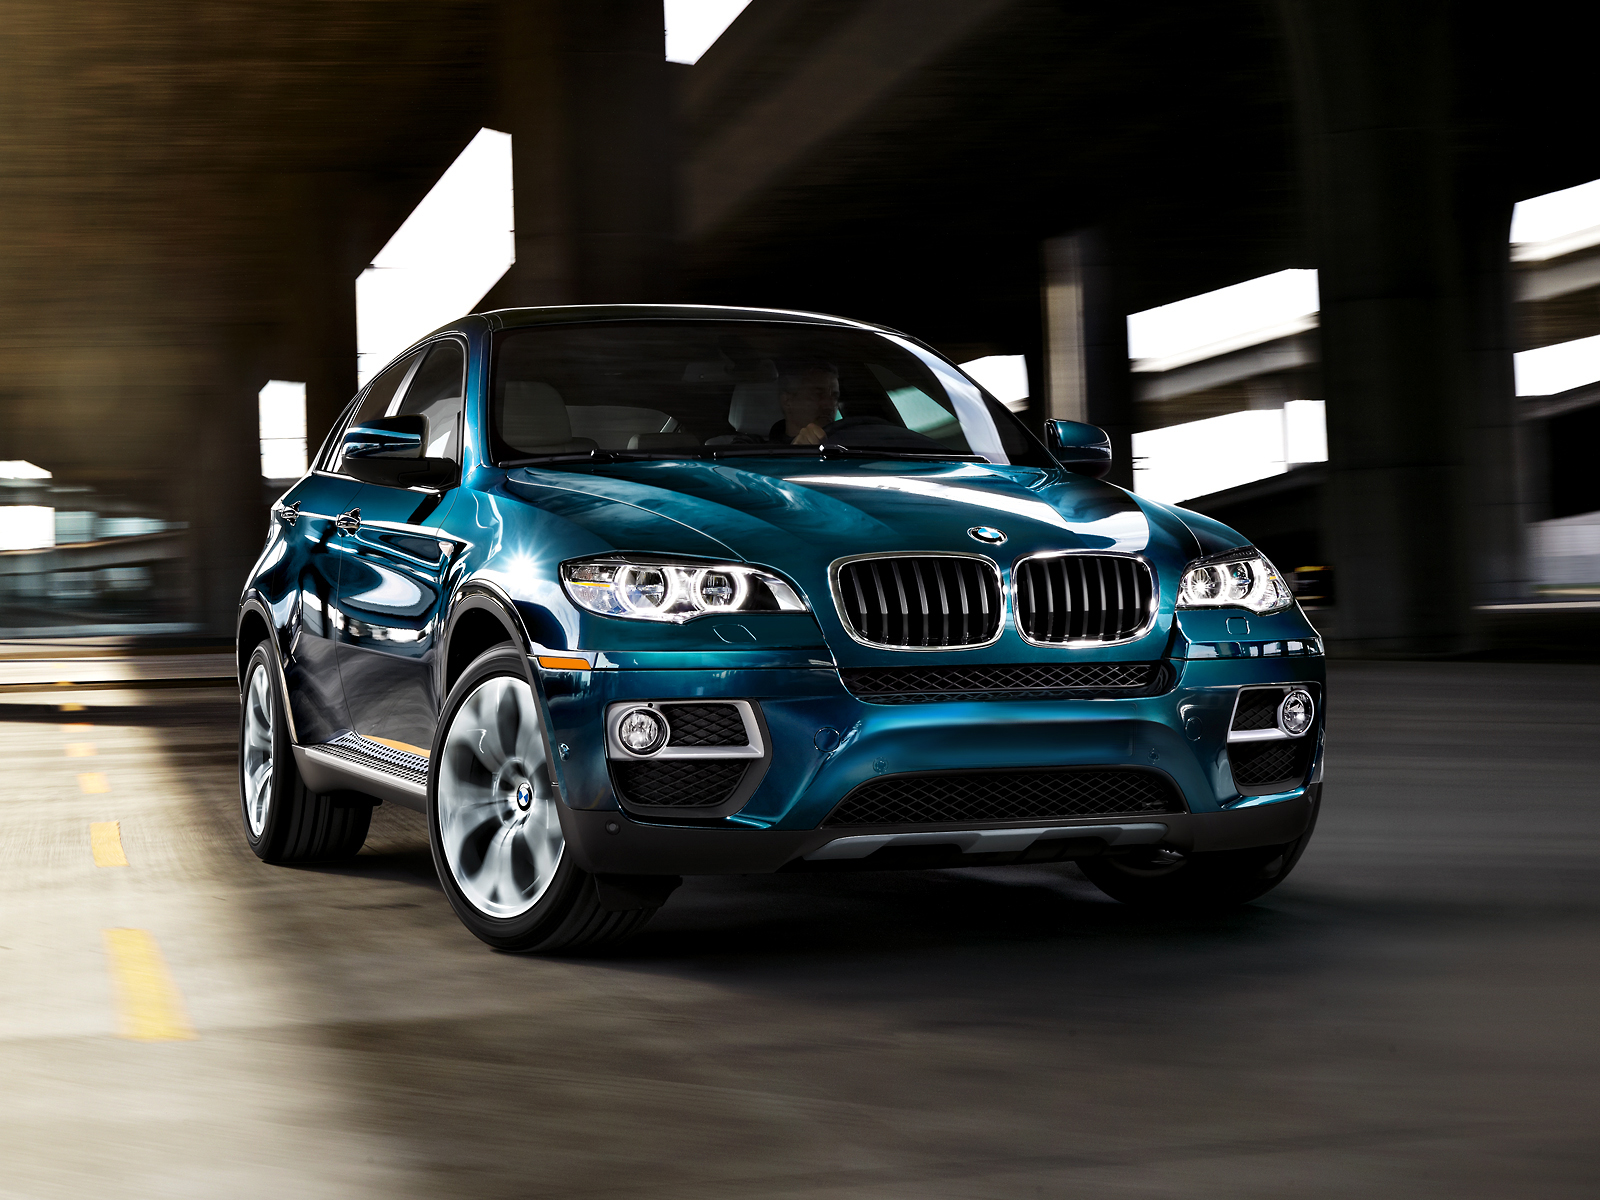 2015 bmw x6 pictures luxury things. Black Bedroom Furniture Sets. Home Design Ideas